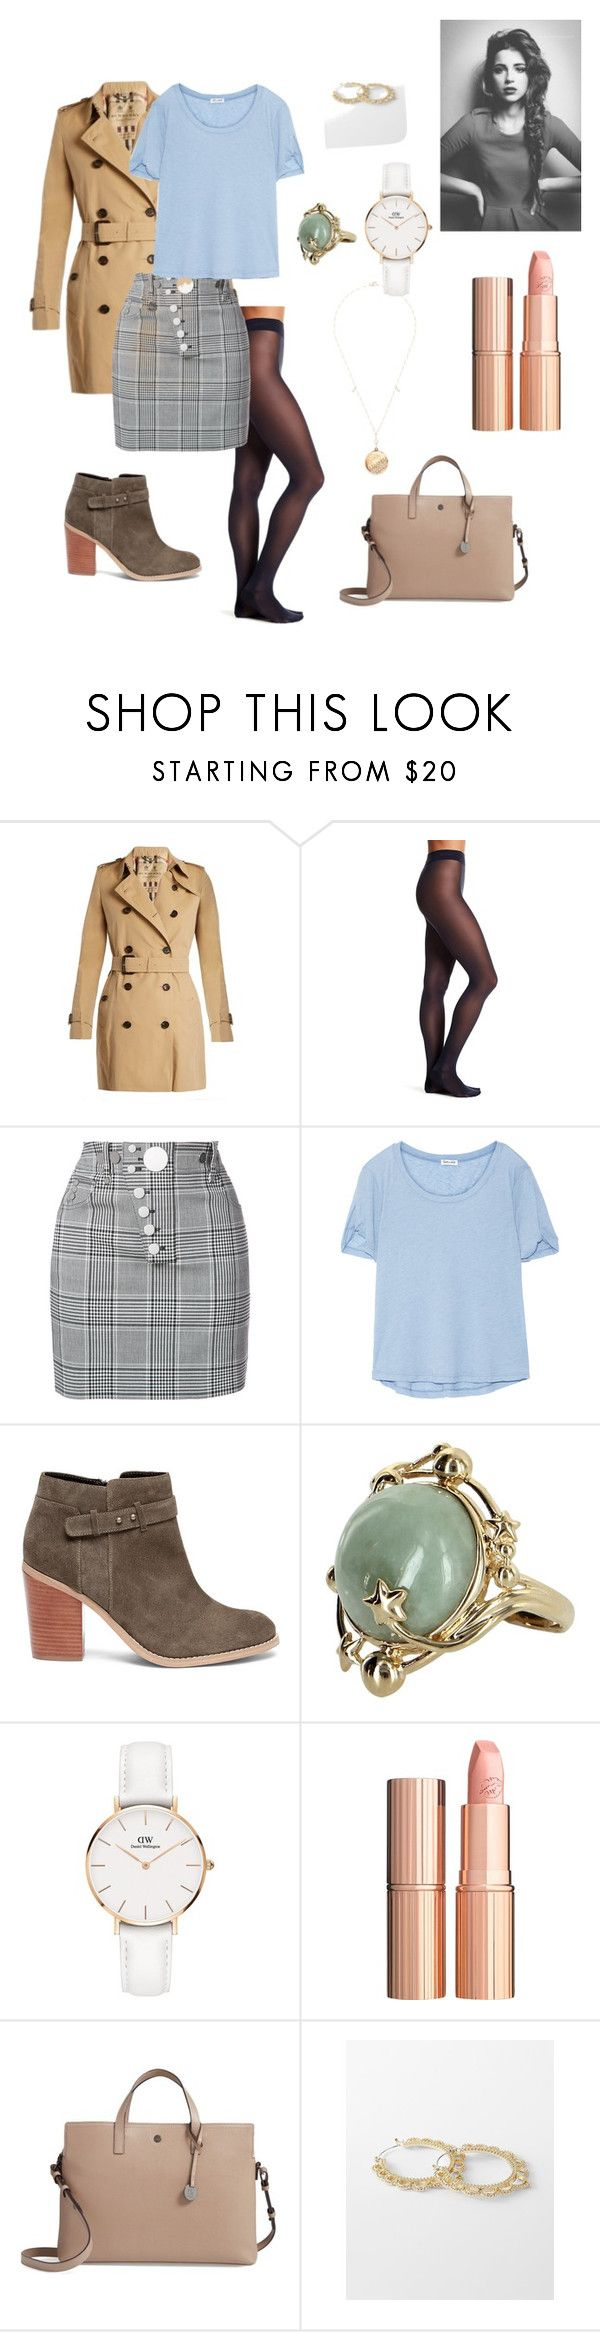 """""""Newspaper"""" by sheatheunicorn on Polyvore featuring Burberry, Wolford, Alexander Wang, Splendid, Sole Society, Vintage, Daniel Wellington, Charlotte Tilbury, Lodis and Express"""